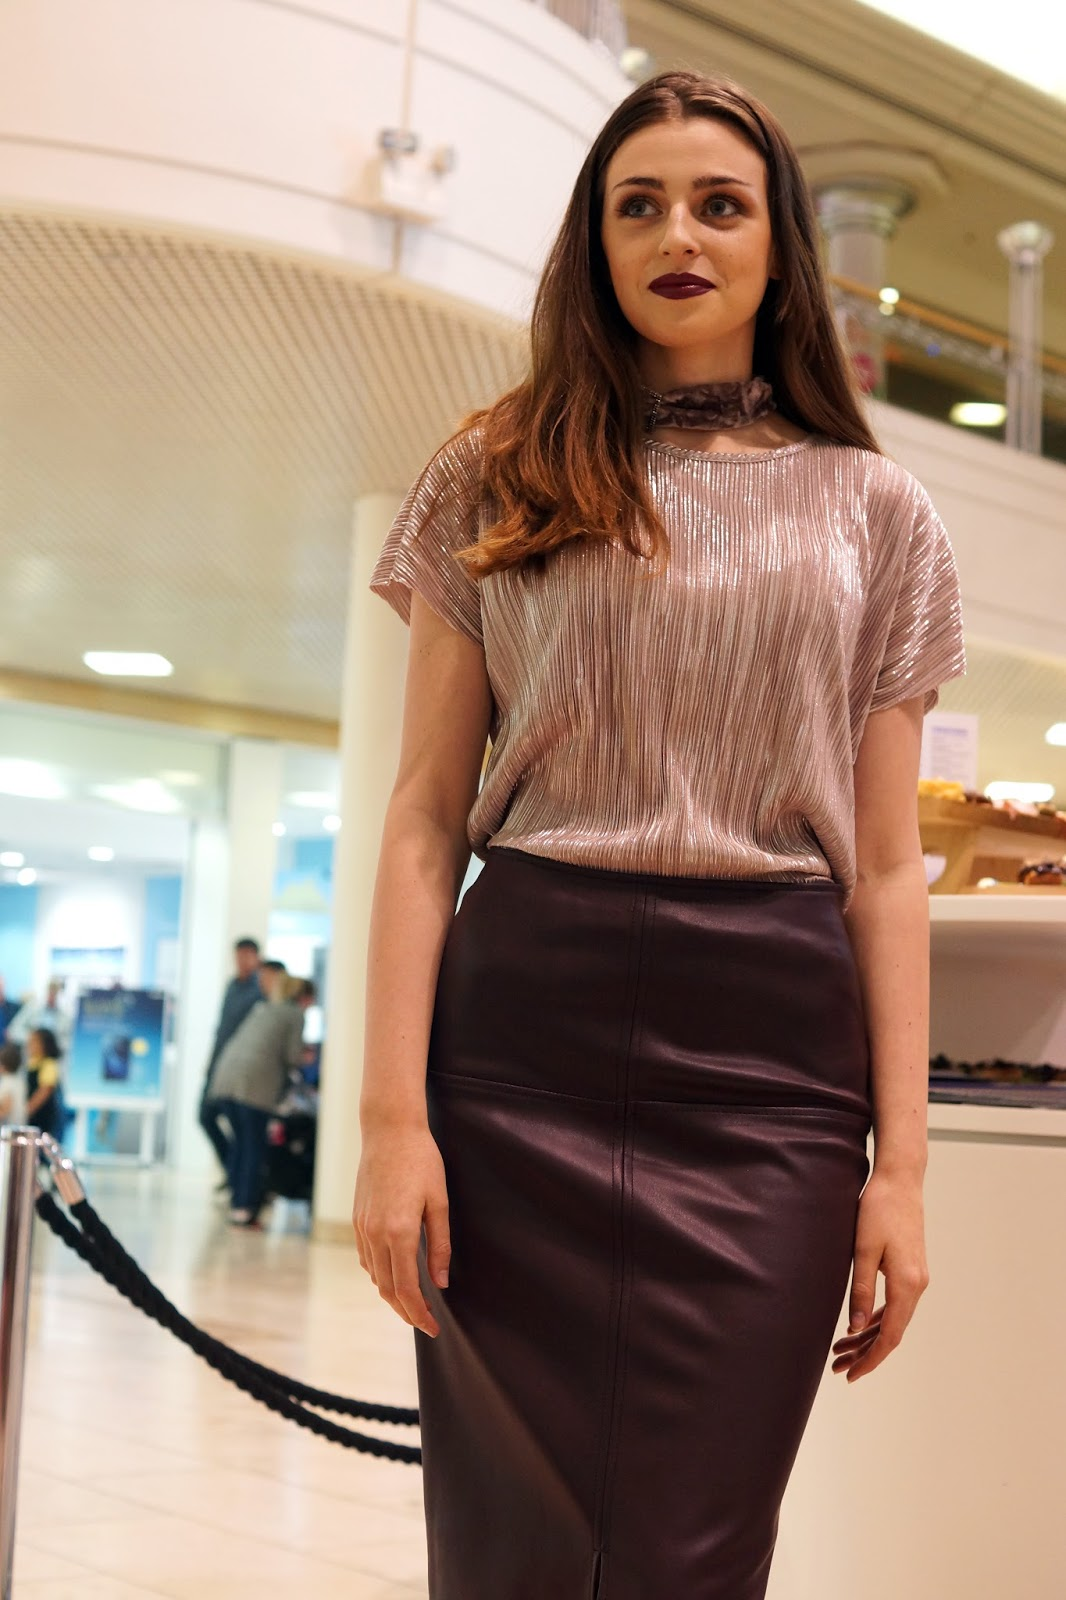 AW16 Style Intu Metrocentre Seasonal Trends North East Bloggers